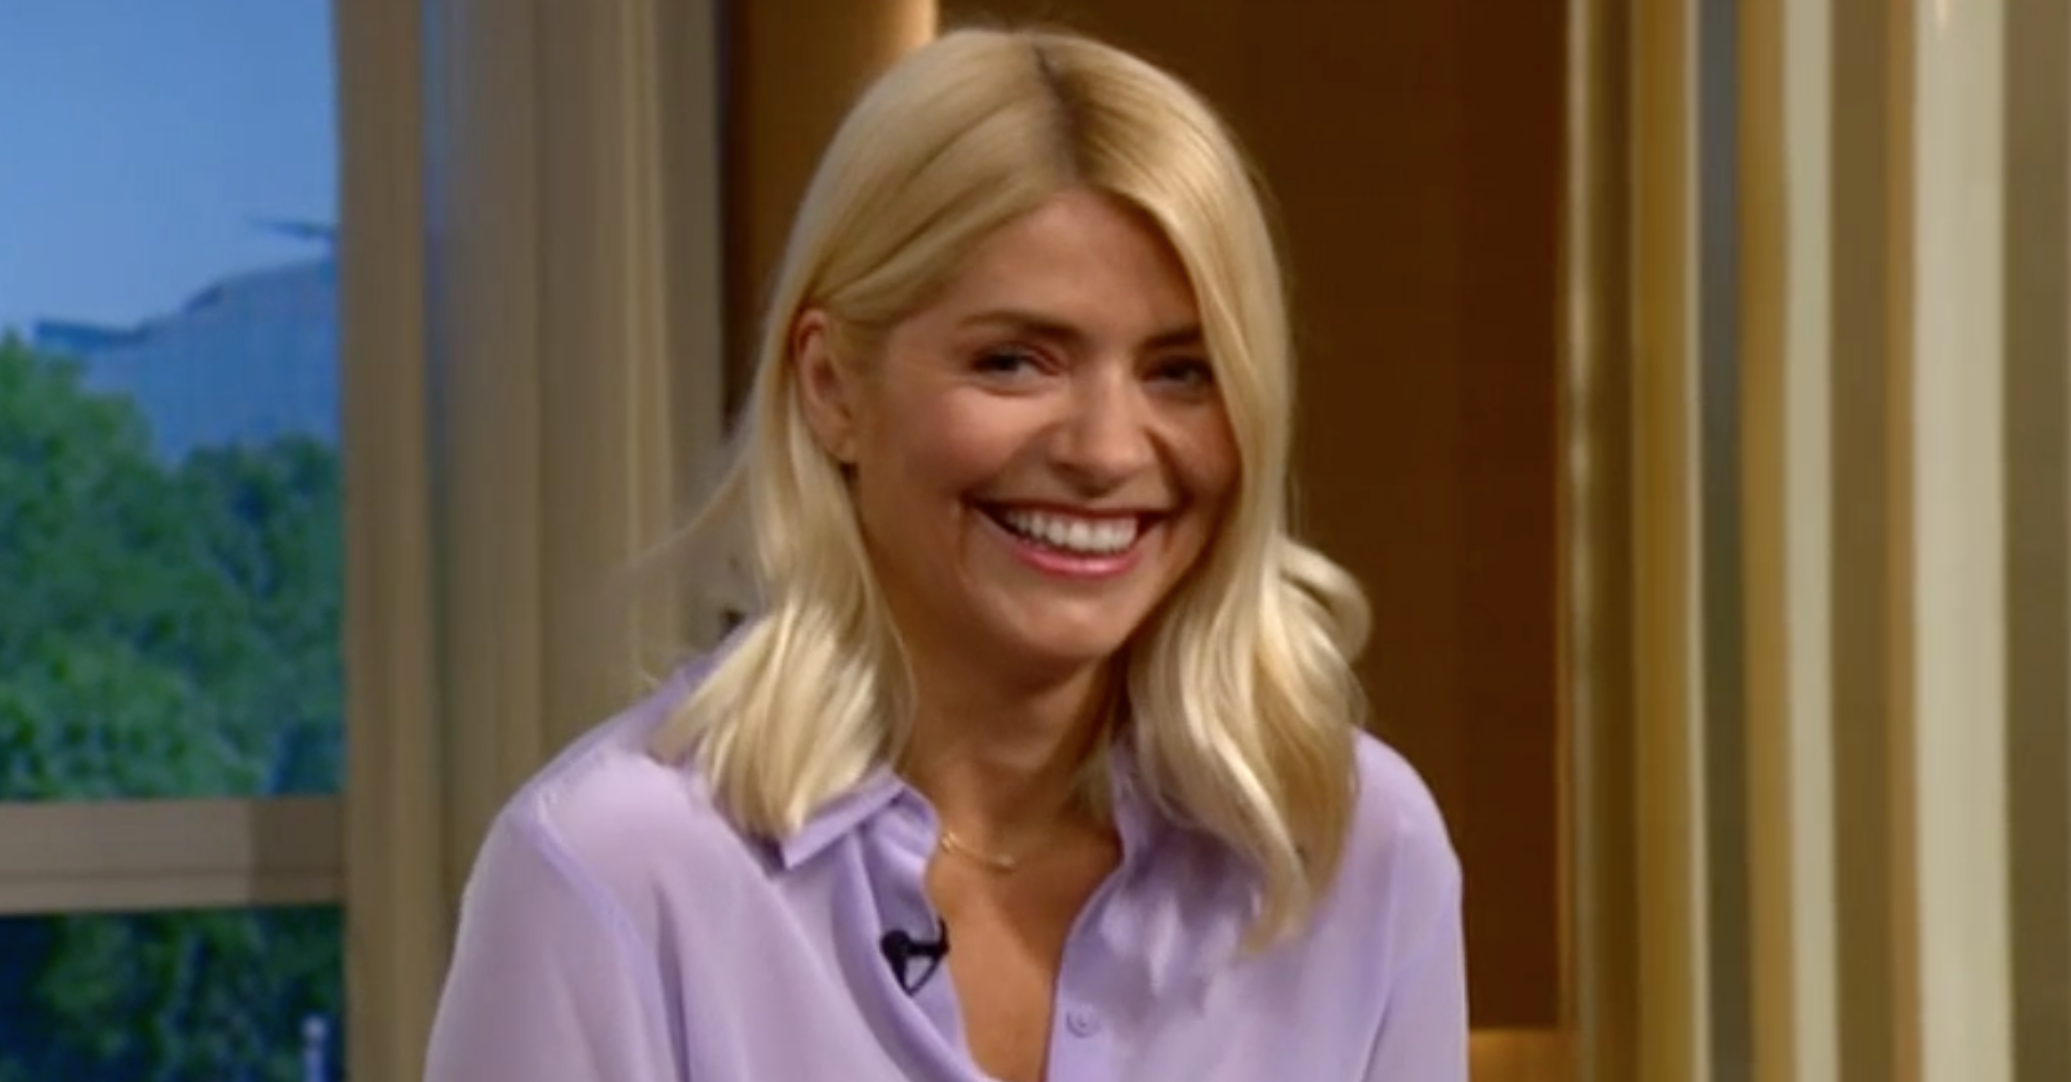 Holly Willoughby fan convinced he can see 'a sloth's face' in her knees